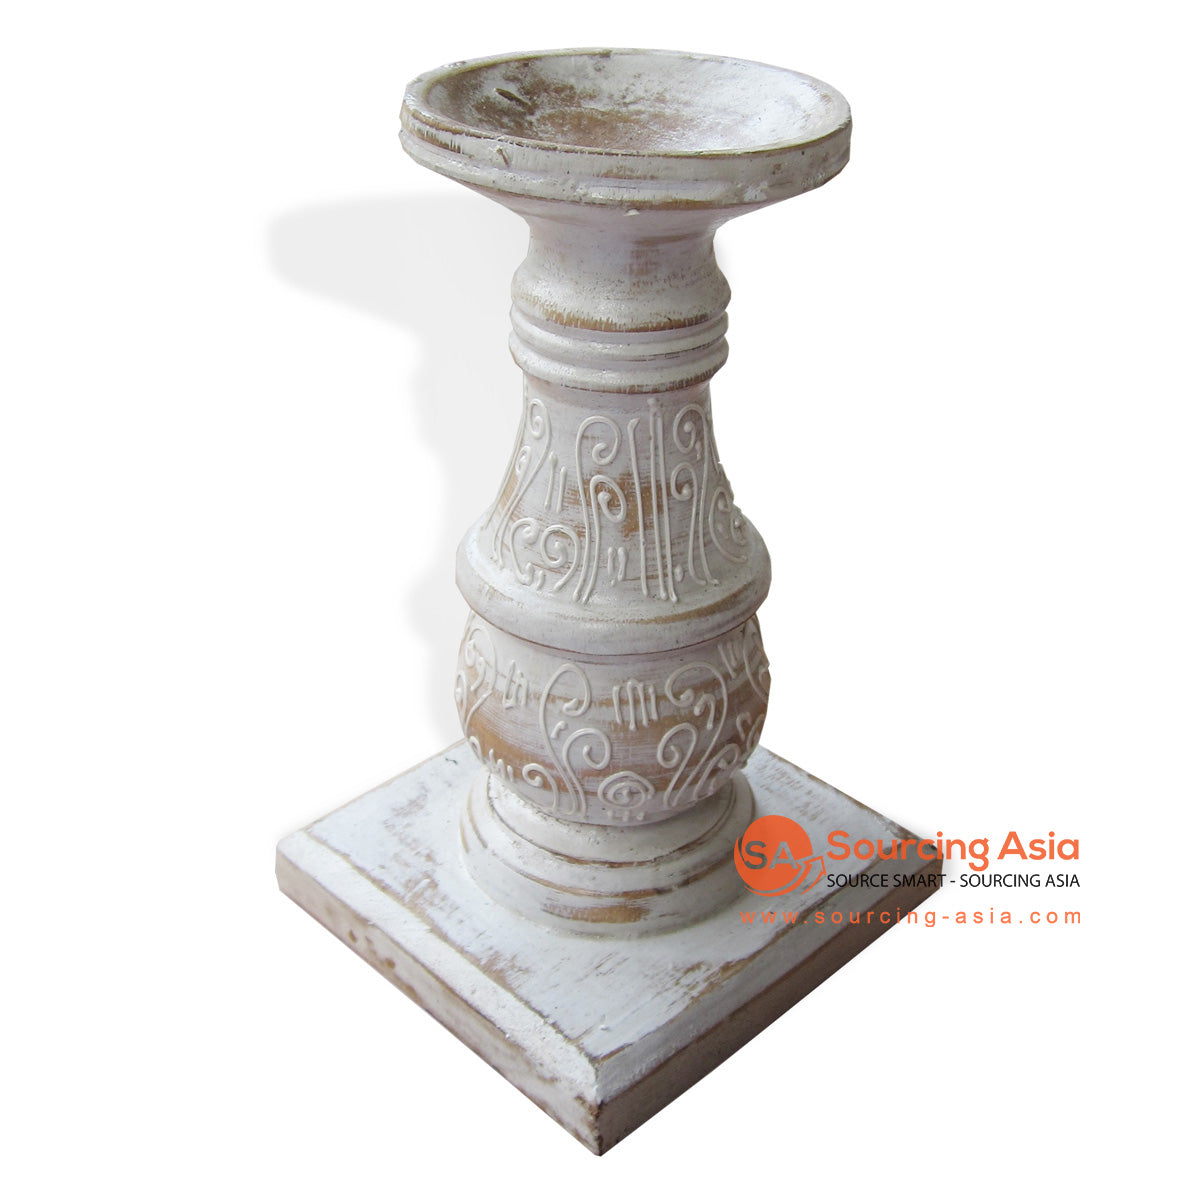 CHWD053-20 CANDLE HOLDER